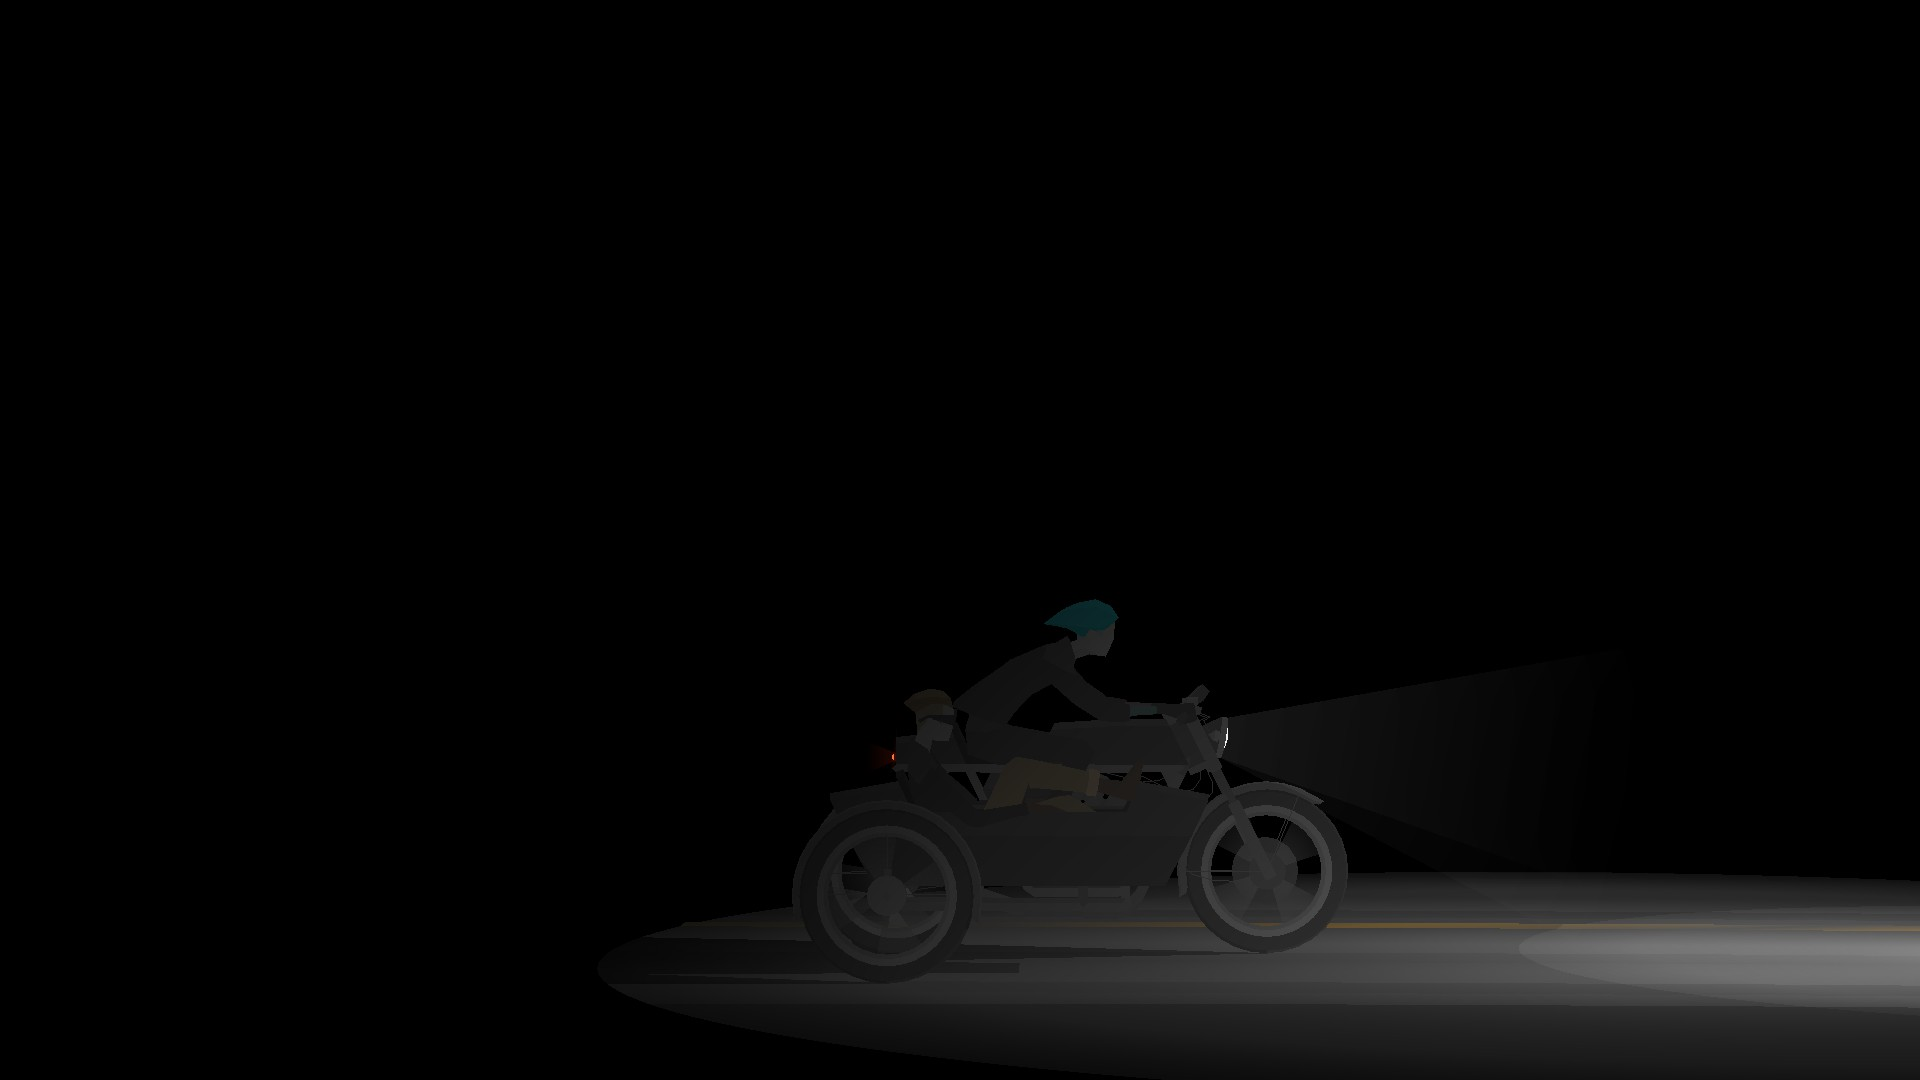 Junebug and Johnny from Kentucky Route Zero ride on a motorcycle in the night.